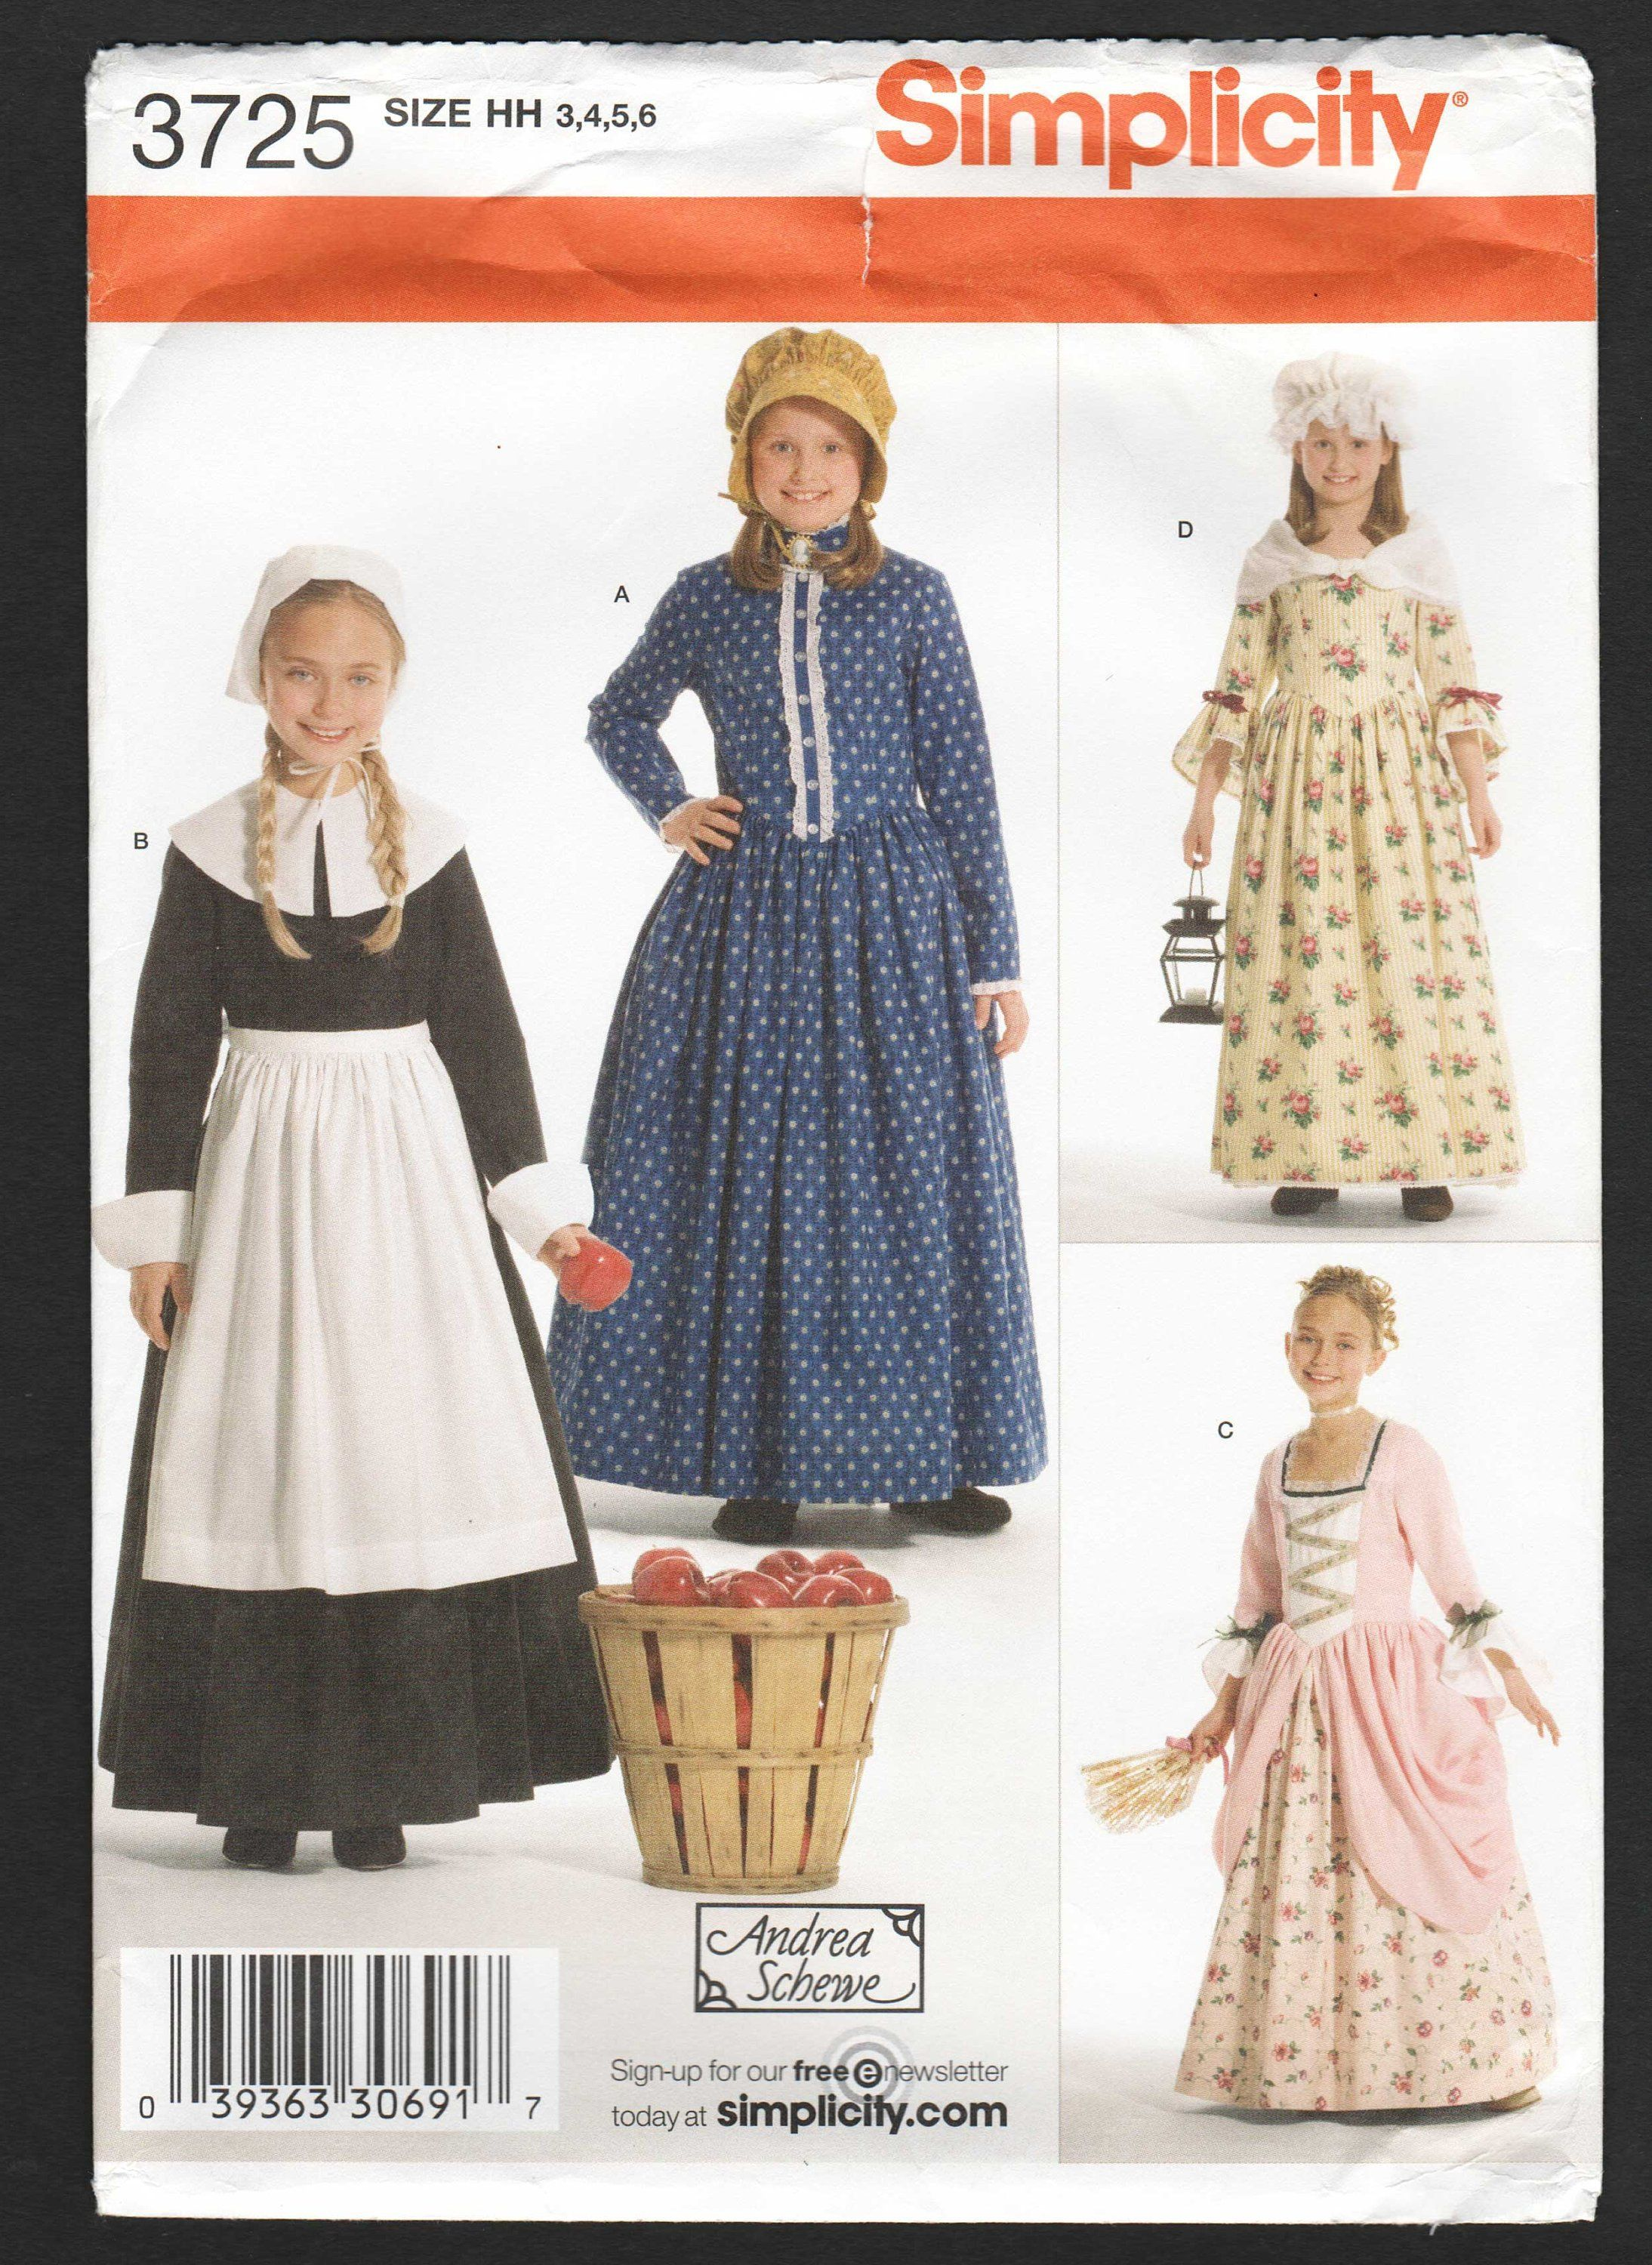 f9e91b370fc50 Girls Colonial Dress Costume Pattern Pioneer Pilgrim 18th 19th Century  Historical Dress Sewing Pattern - Simplicity 3723 Size 3 4 5 6 UNCUT